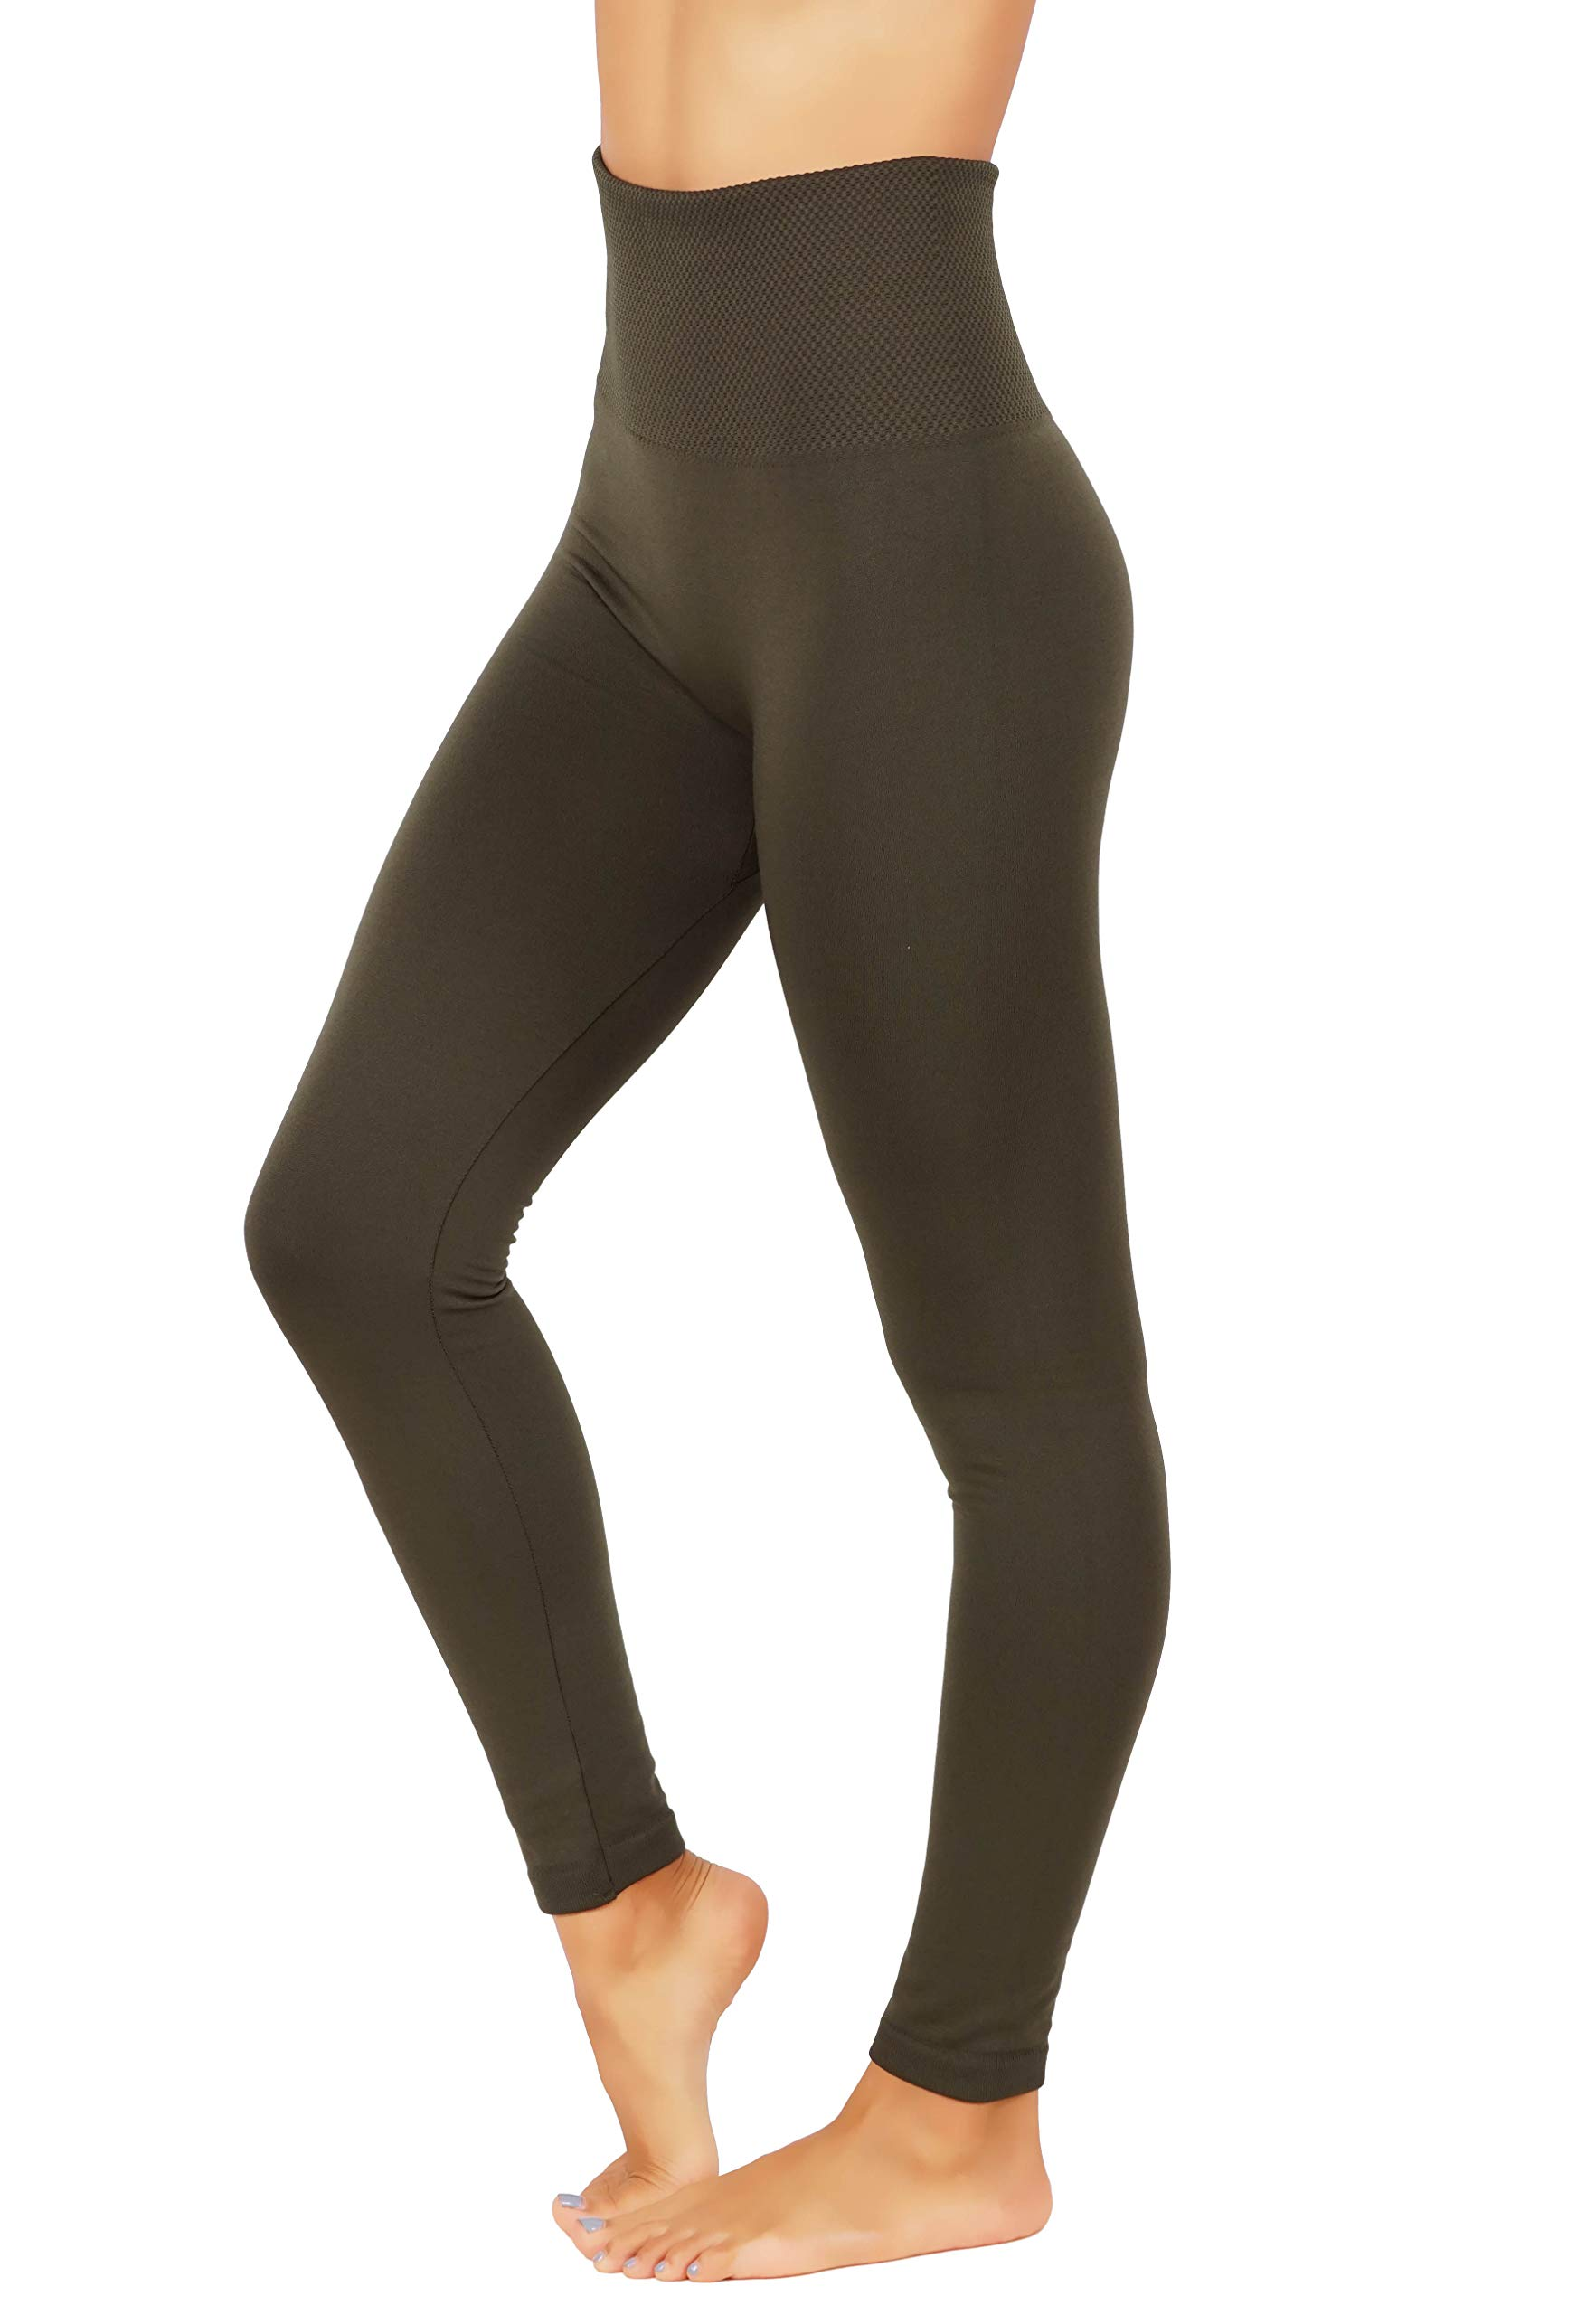 Fit Division Women`s Pants Buttery Soft Fleece Leggings High Waist Winter Thermal (S/M (one Size) US 2-8, FD538-AMG)